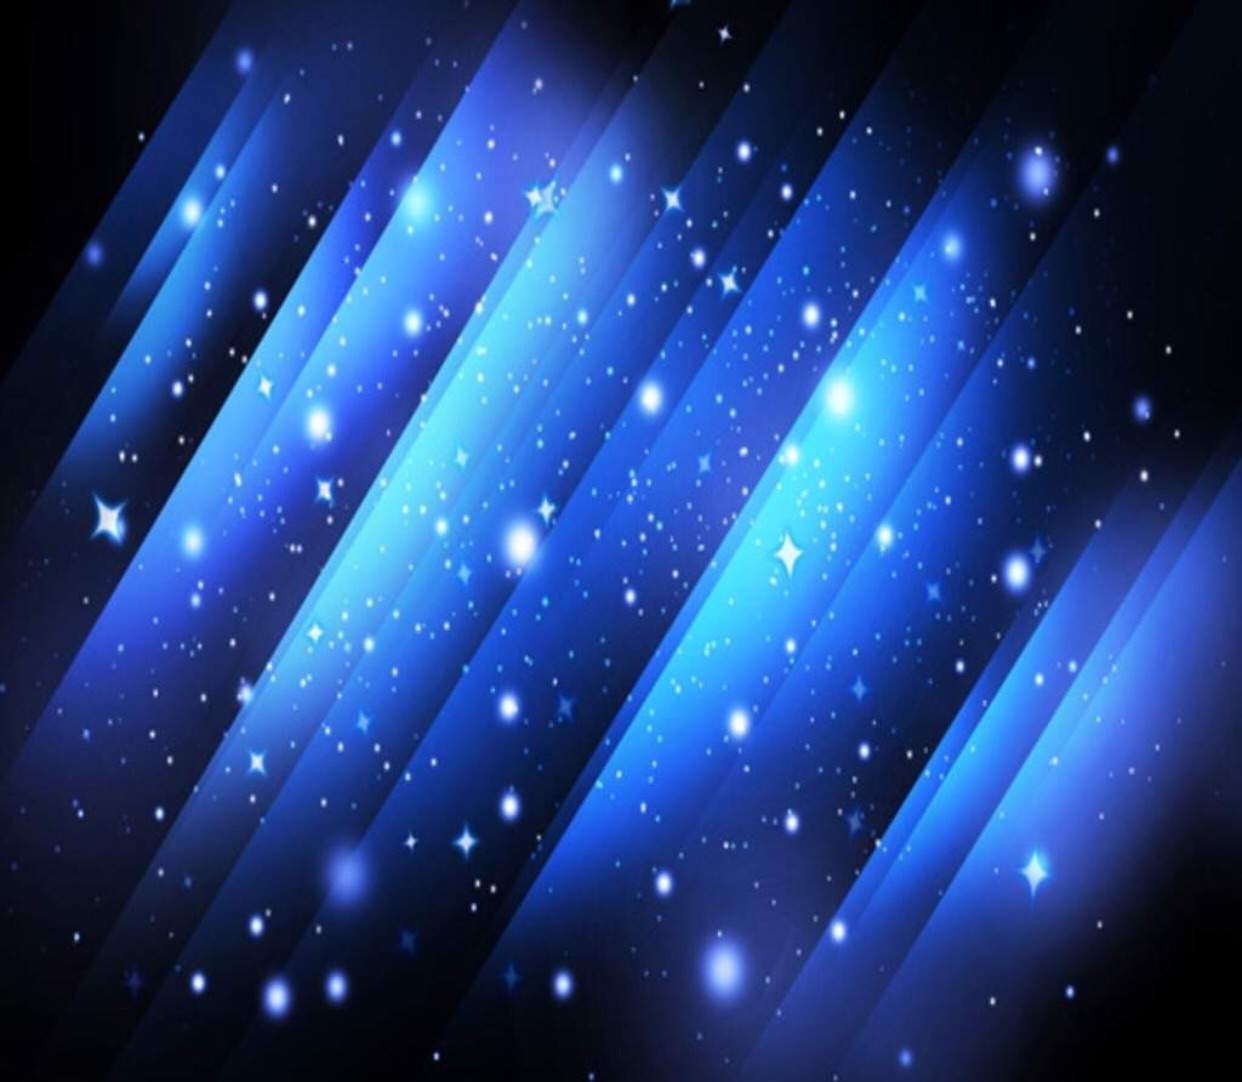 Black And Blue Stars Backgrounds الجنود ف...